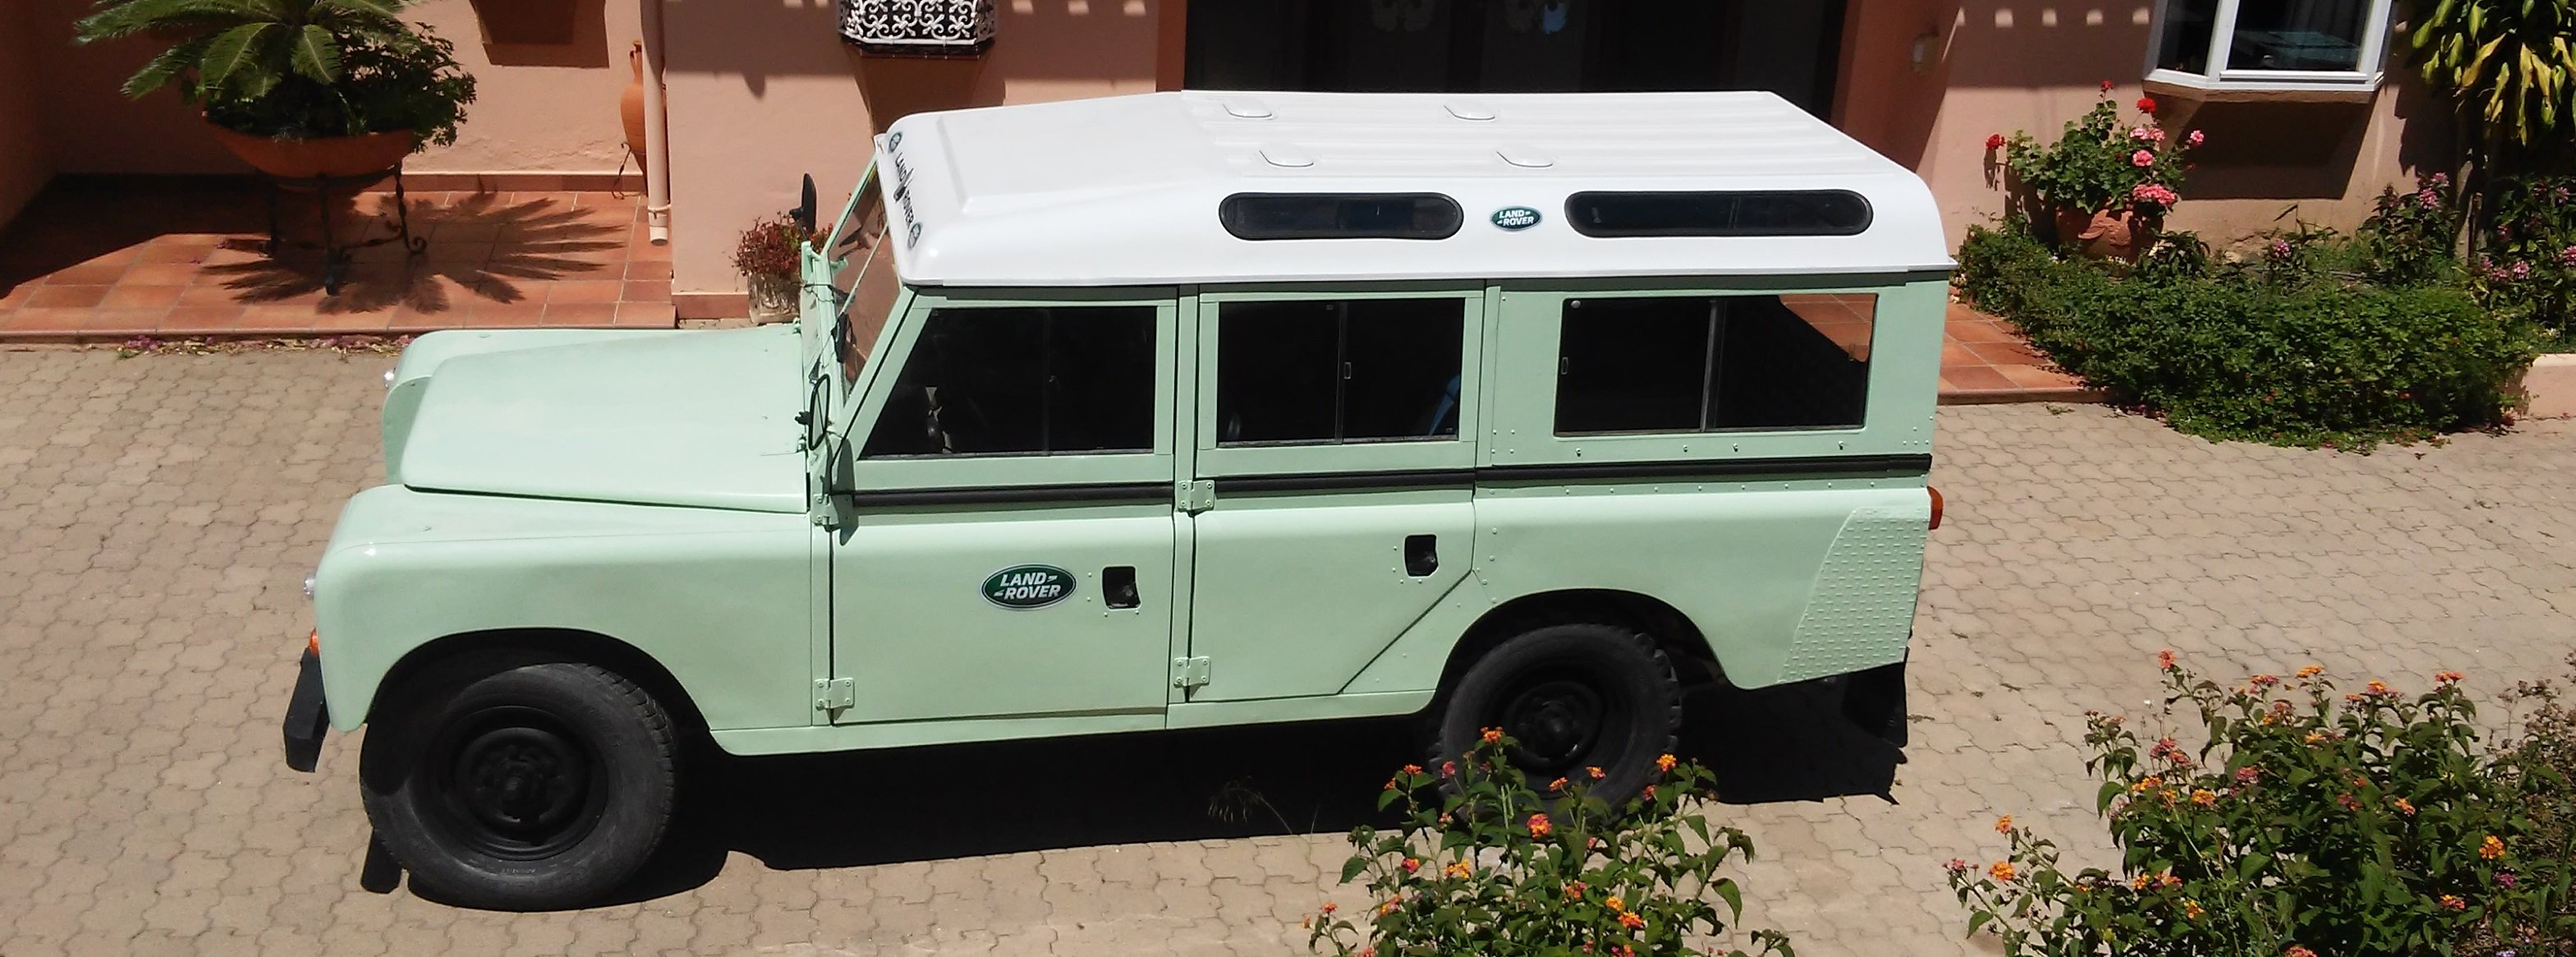 9404 Classic Land Rover 109 Series III Station Wagon   1979 For Sale (picture 1 of 6)